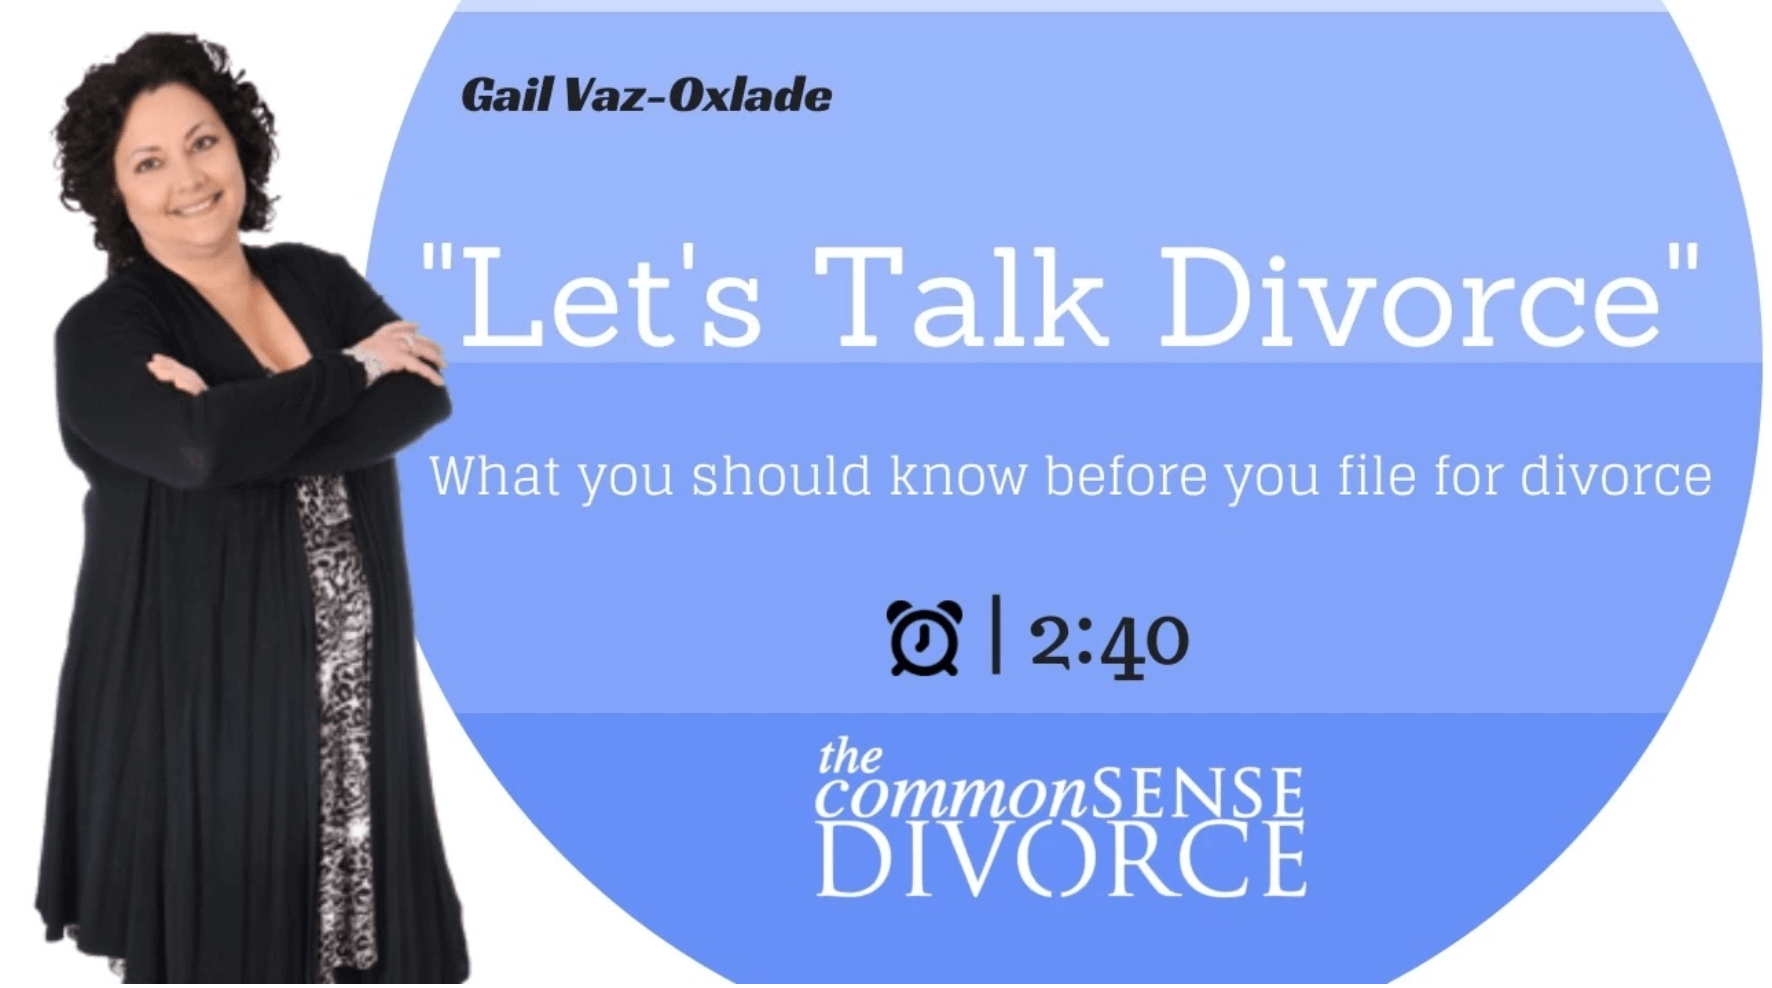 Let's Talk Divorce with Gail Vaz-Oxlade 7